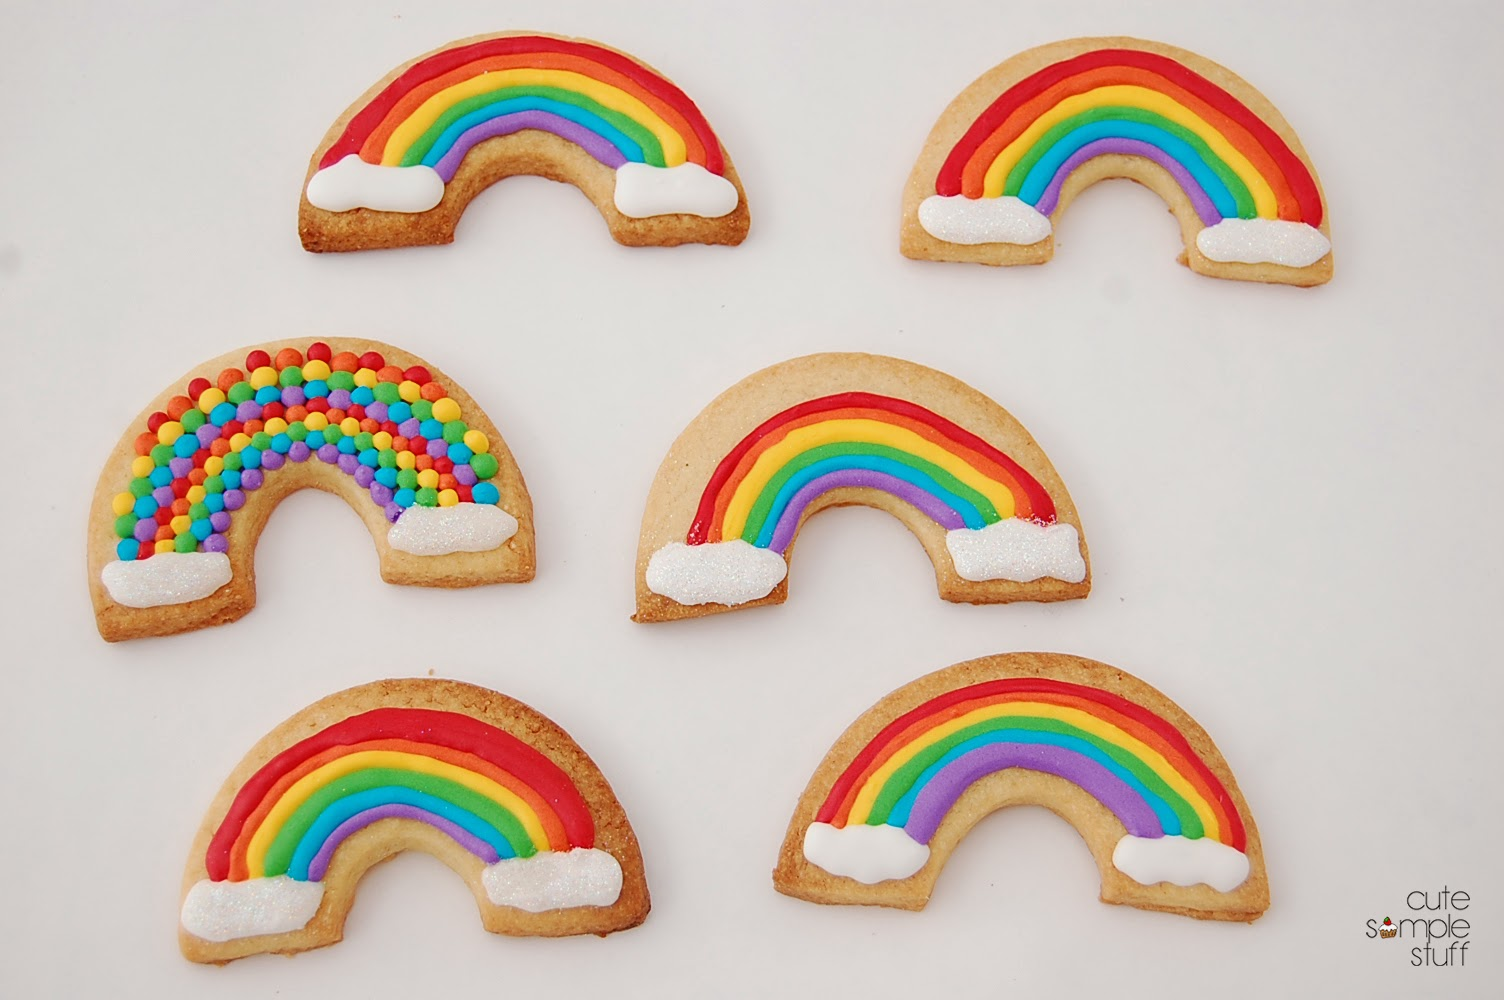 CUTE SIMPLE STUFF: How to make Rainbow cookies using round ...